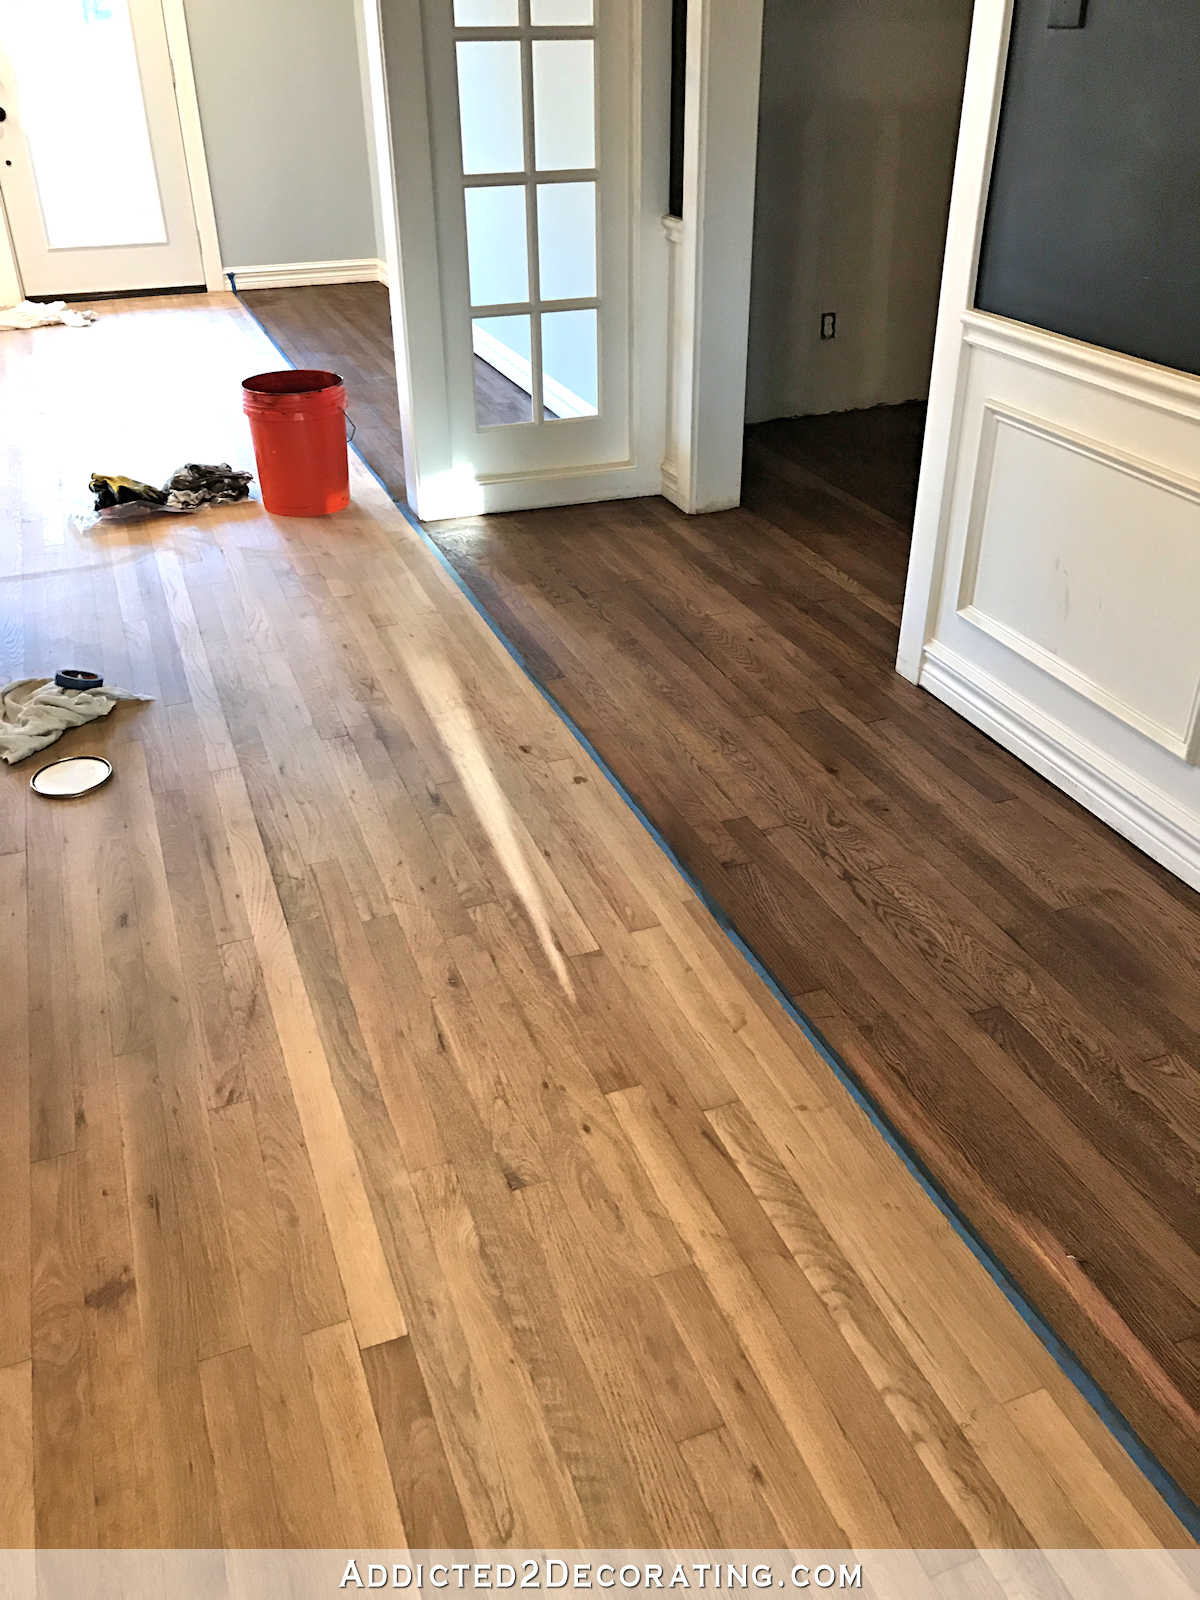 hardwood floor refinishing kansas city of how much to refinish wood floors adventures in staining my red oak in how much to refinish wood floors adventures in staining my red oak hardwood floors products